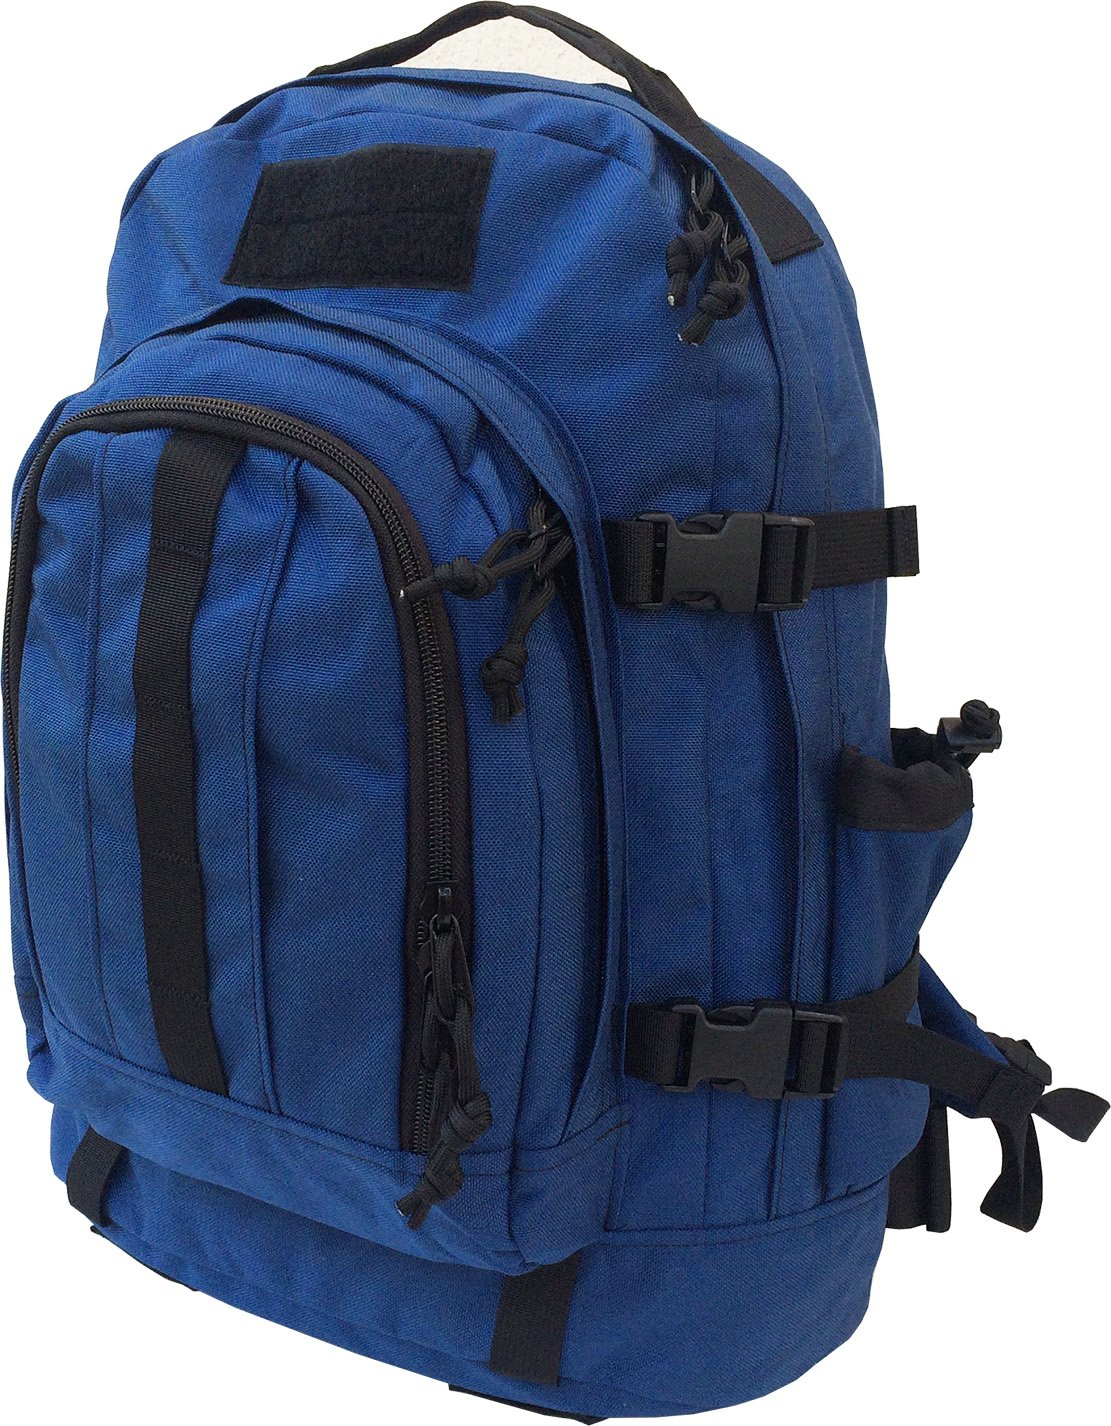 Fire Force Expedition IIパックタクティカルバックパックスクールDaypack Made in USA B015ISBKES Cadet Blue (Light Navy)